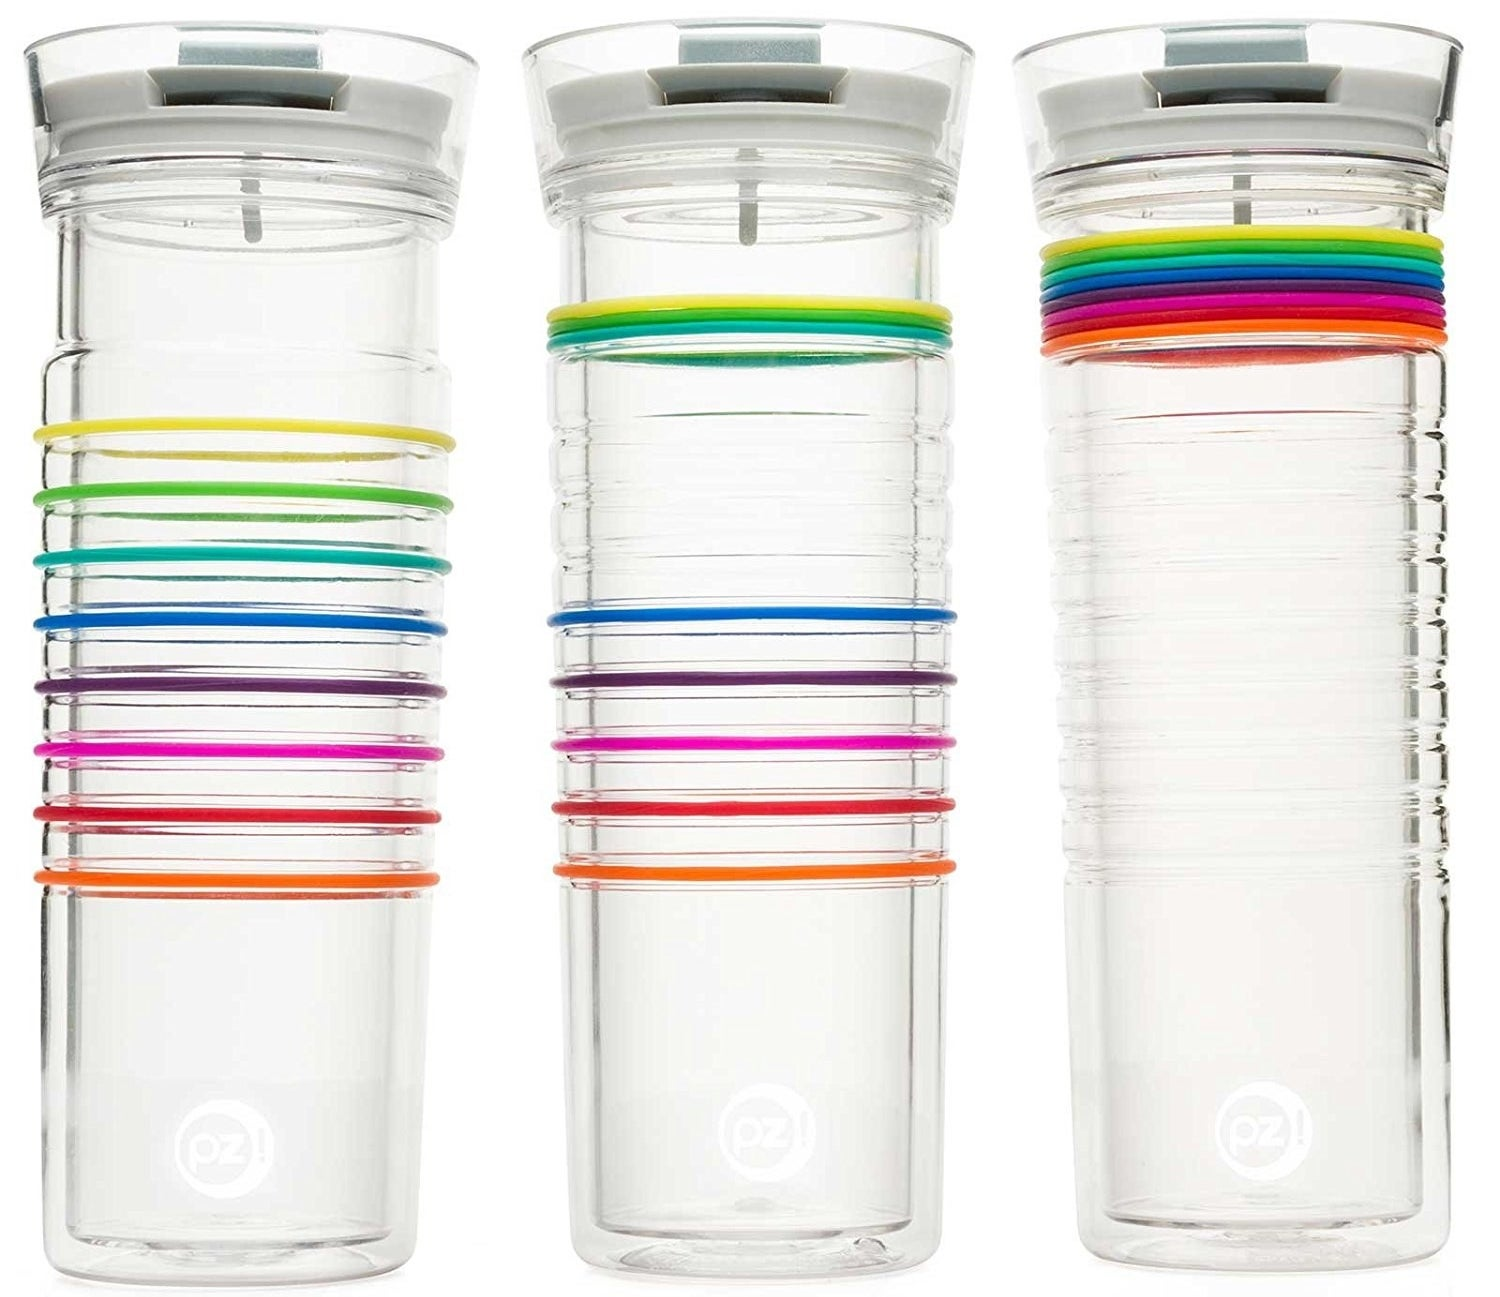 """Move a colorful band up every time you finish the water bottle. Refill it and repeat until you've reached your daily water intake goal. Promising Review: """"If you're like me and have a hard time getting in that daily requirement of water, you might want to try this water bottle! I loved seeing my progress through the day as I moved my bands up the bottle. The longer I have used them the more I have been able to drink throughout my day. I got these as a cyber Monday item and started out moving just two bands up and now I'm at 6! The double wall insulation keeps drinks nice and cold."""" —MagpieGet it from Amazon for $9.60+ (available in five colors)."""